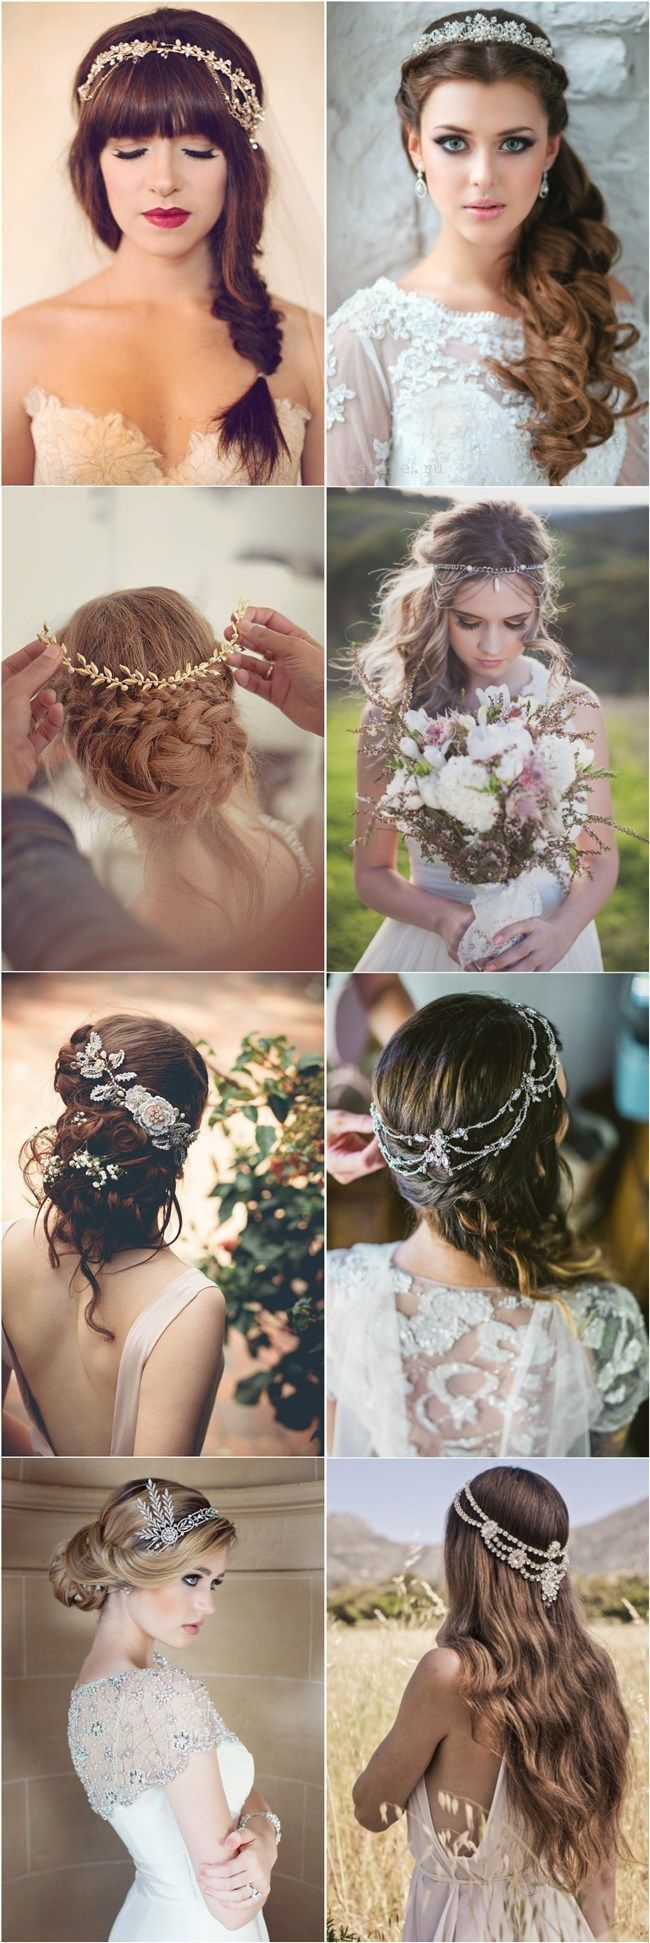 2017 new wedding hairstyles for brides and flower girls | long